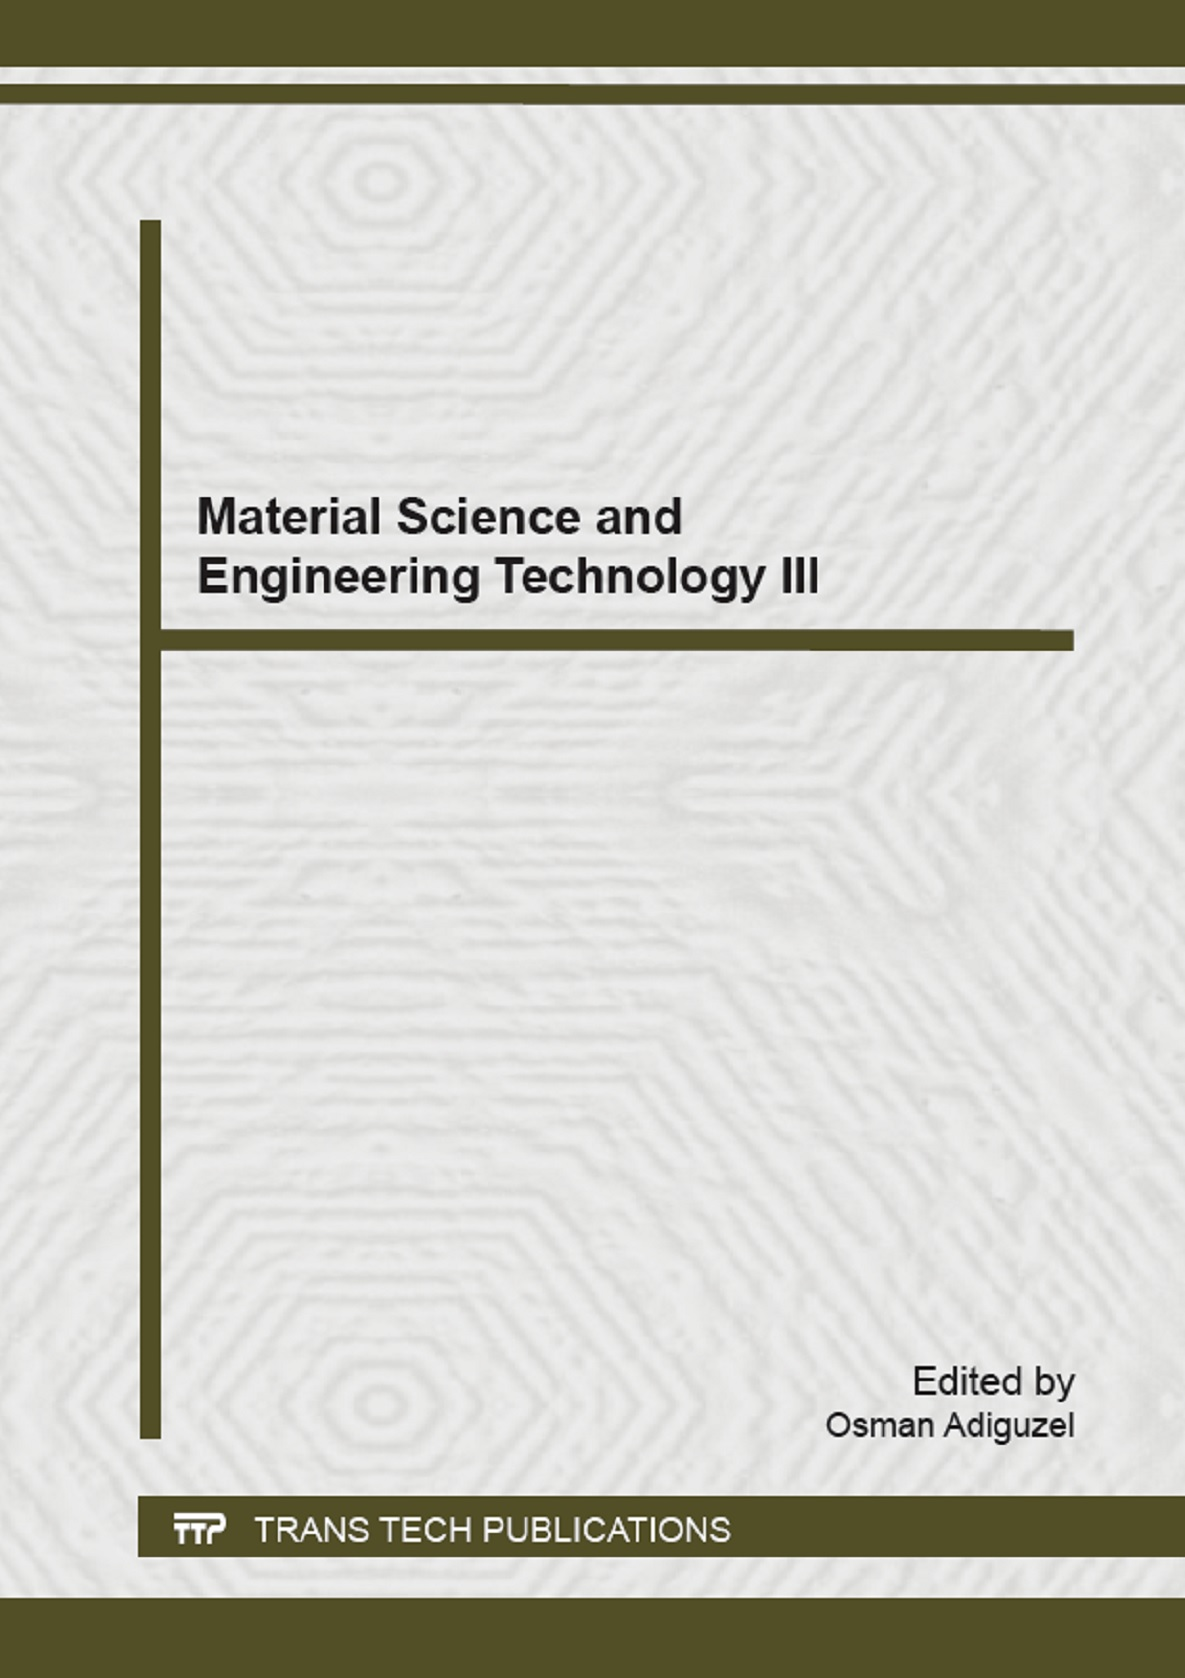 Material Science and Engineering Technology III